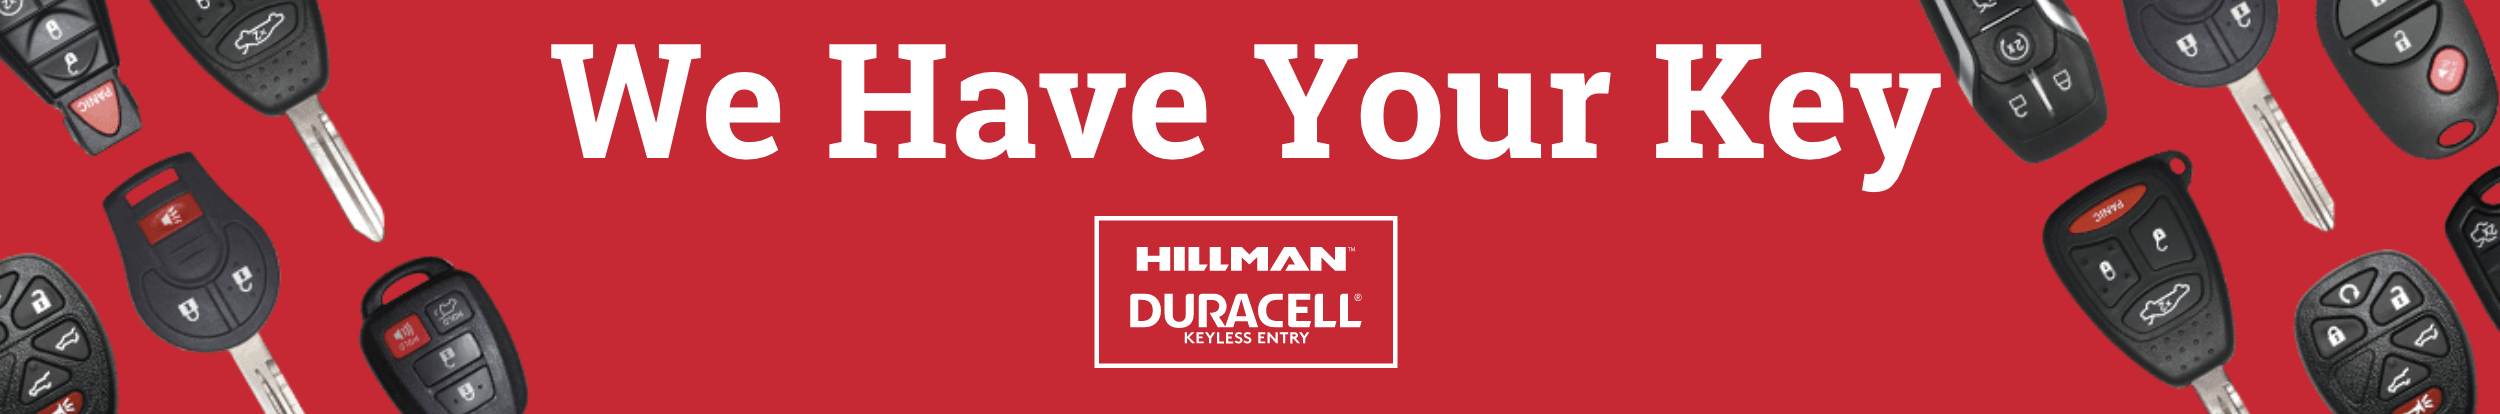 we have your key banner featuring hillman duracell keys